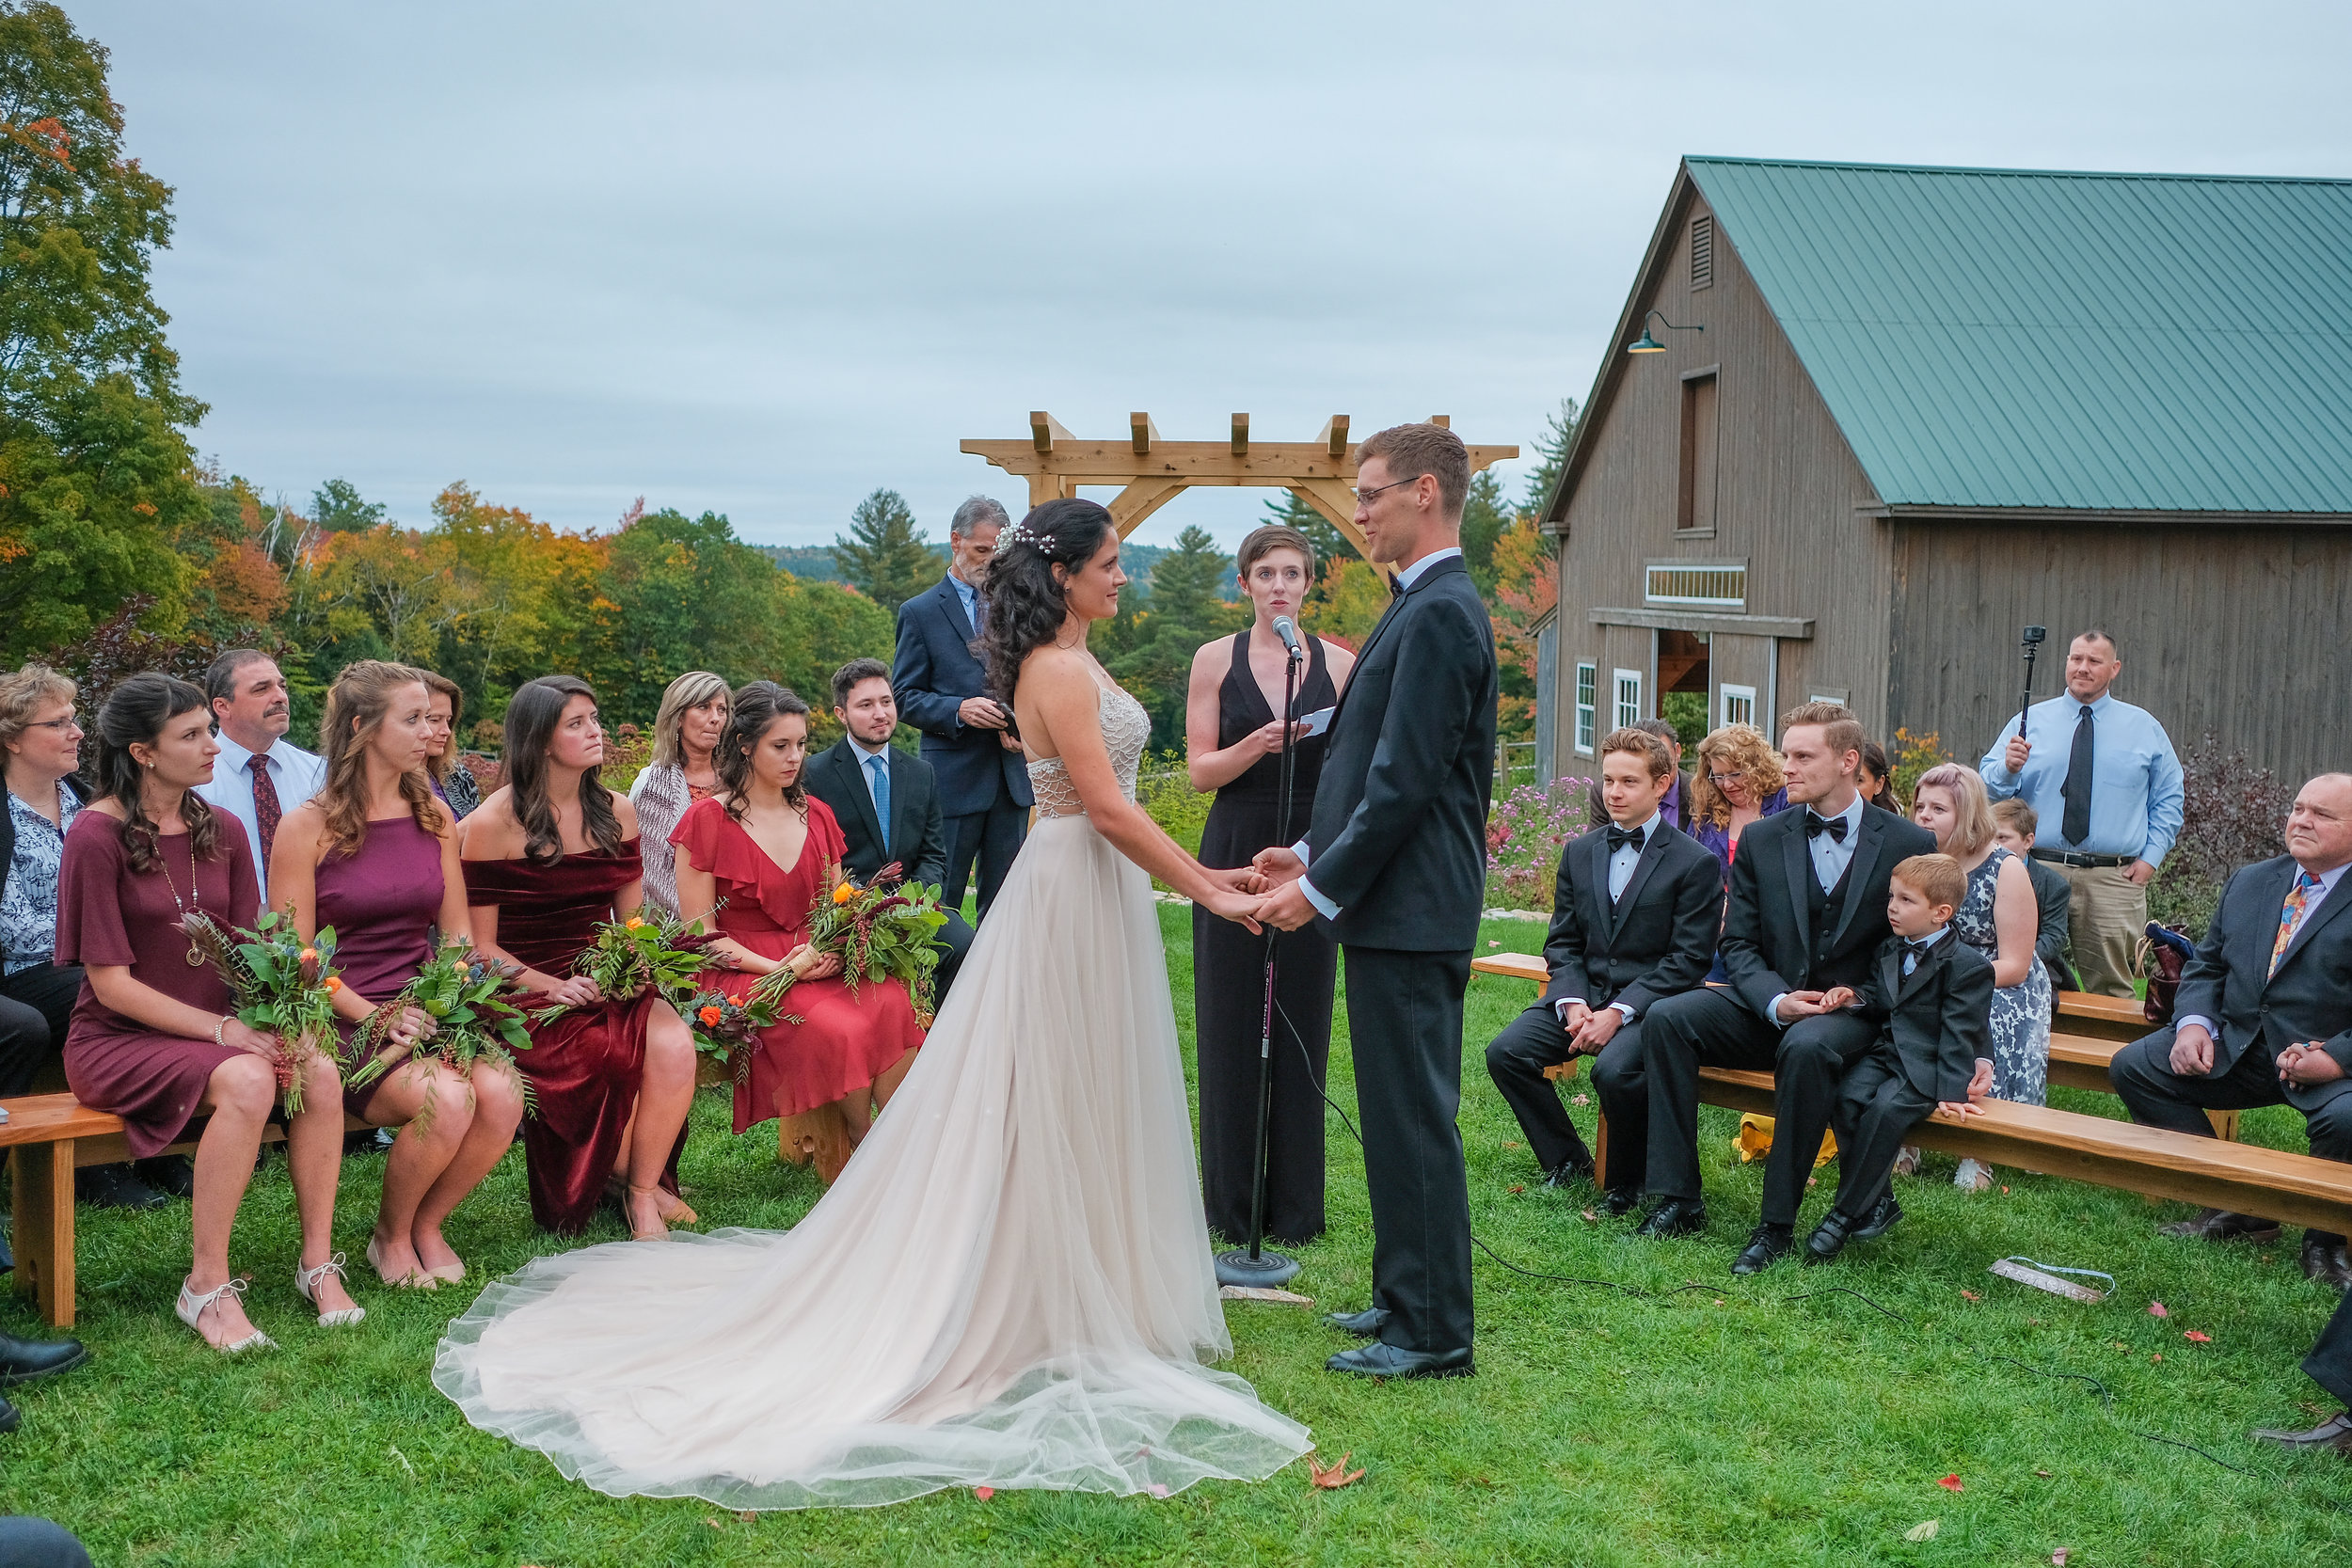 Locke-Falls-Farm-wedding-photography-526.jpg